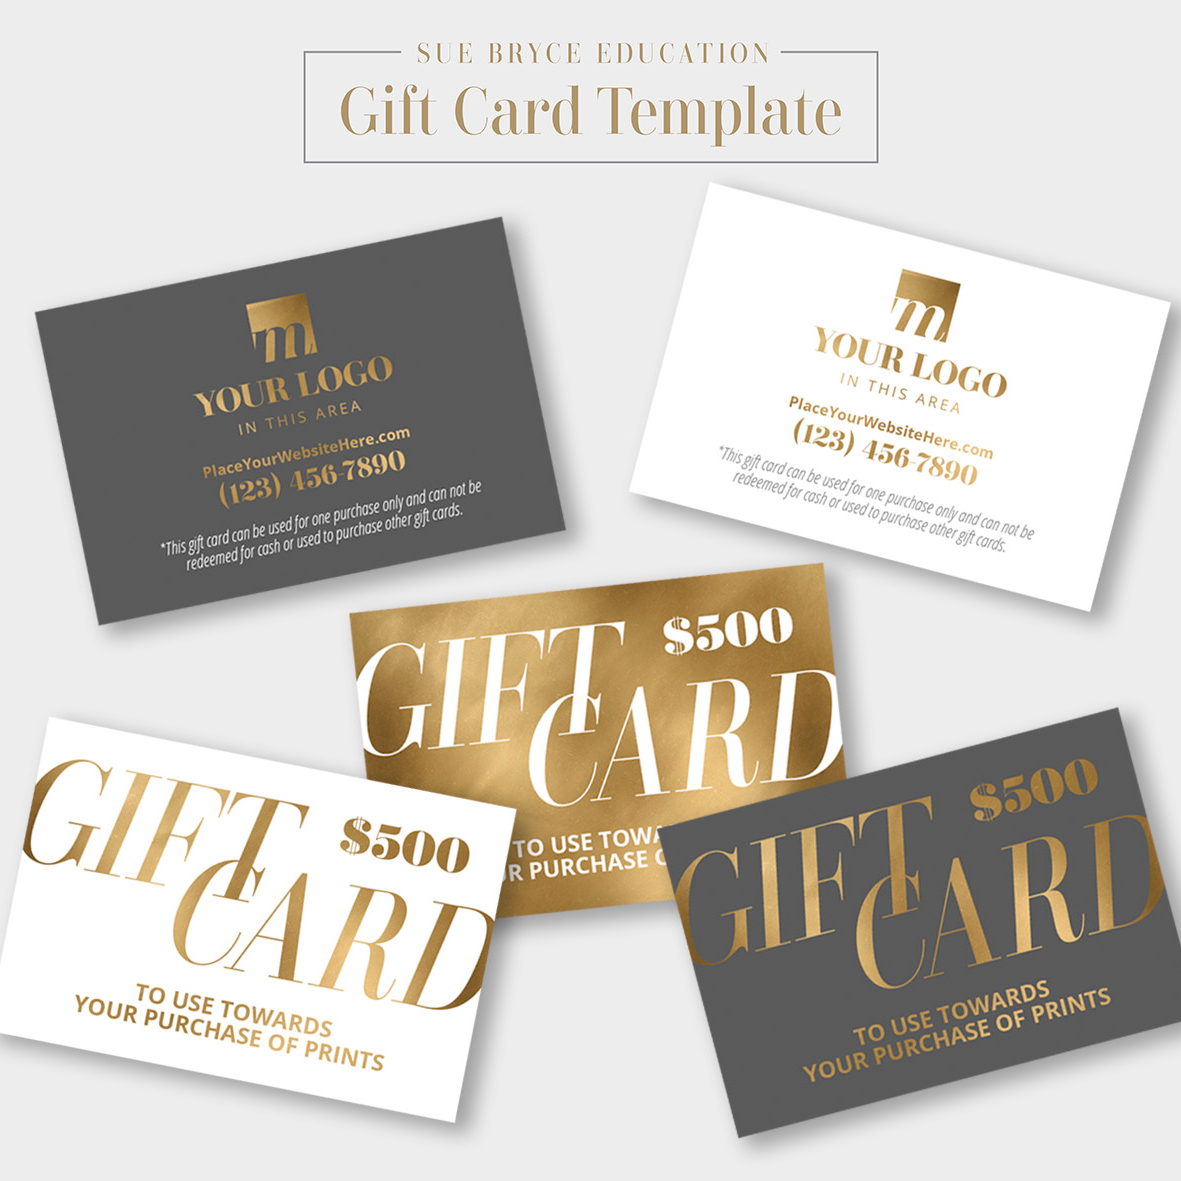 gold foil gift card template sue bryce education. Black Bedroom Furniture Sets. Home Design Ideas